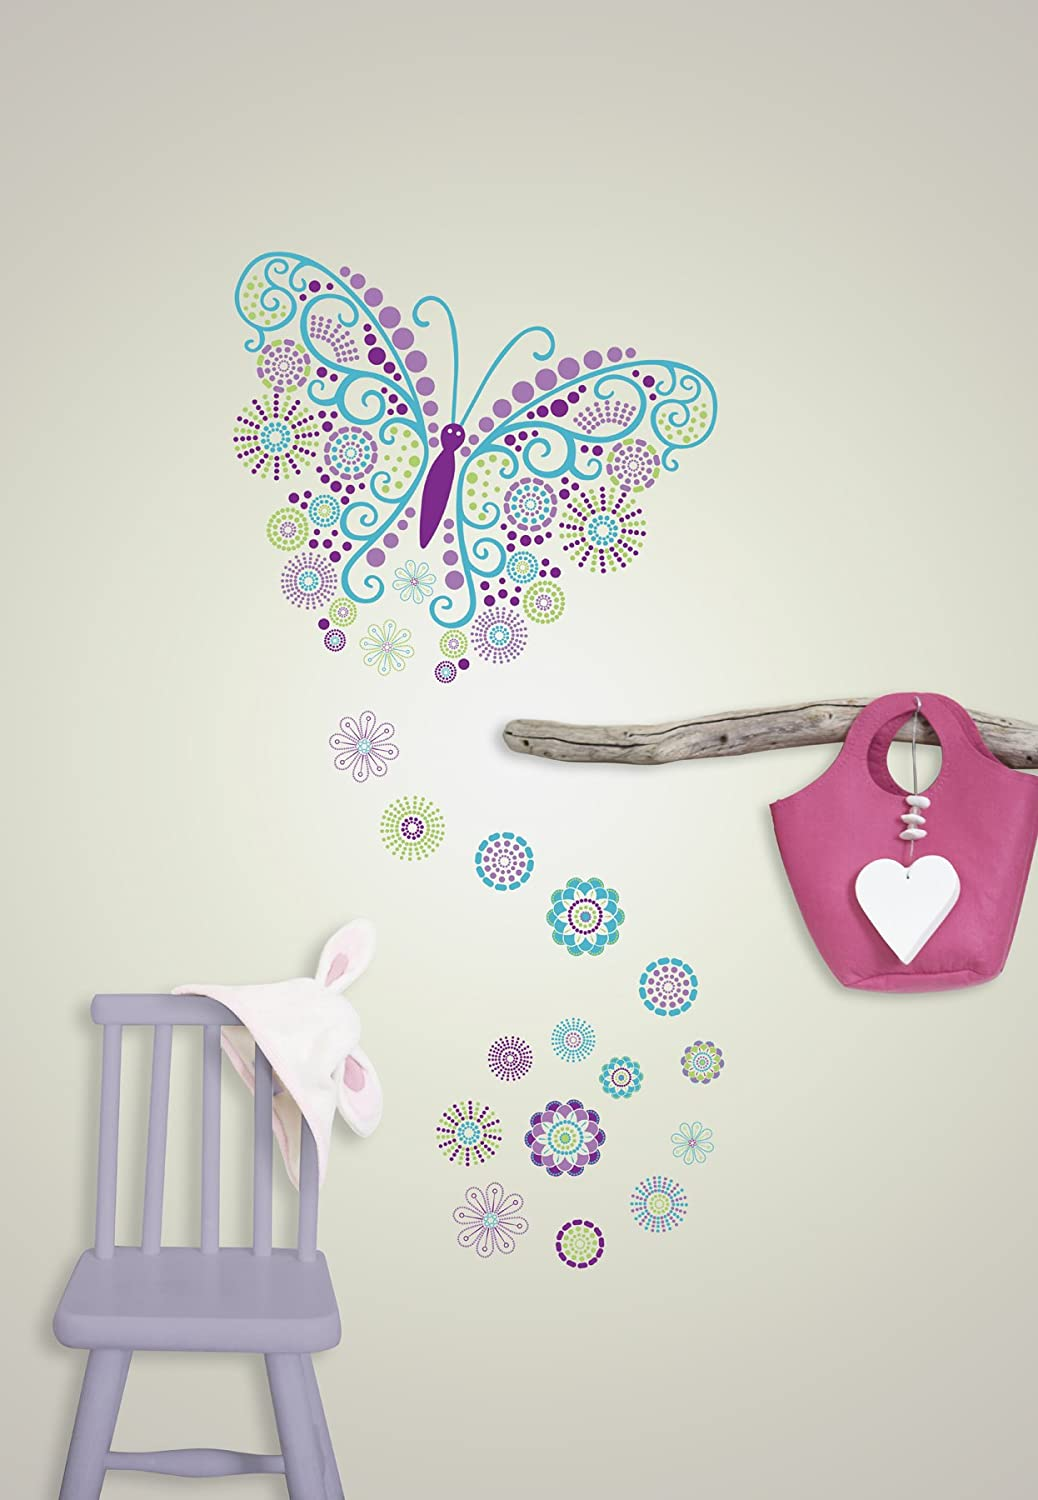 Wall Pops WPK0626 Social Butterfly Wall Decals   Decorative Wall Appliques    Amazon.com